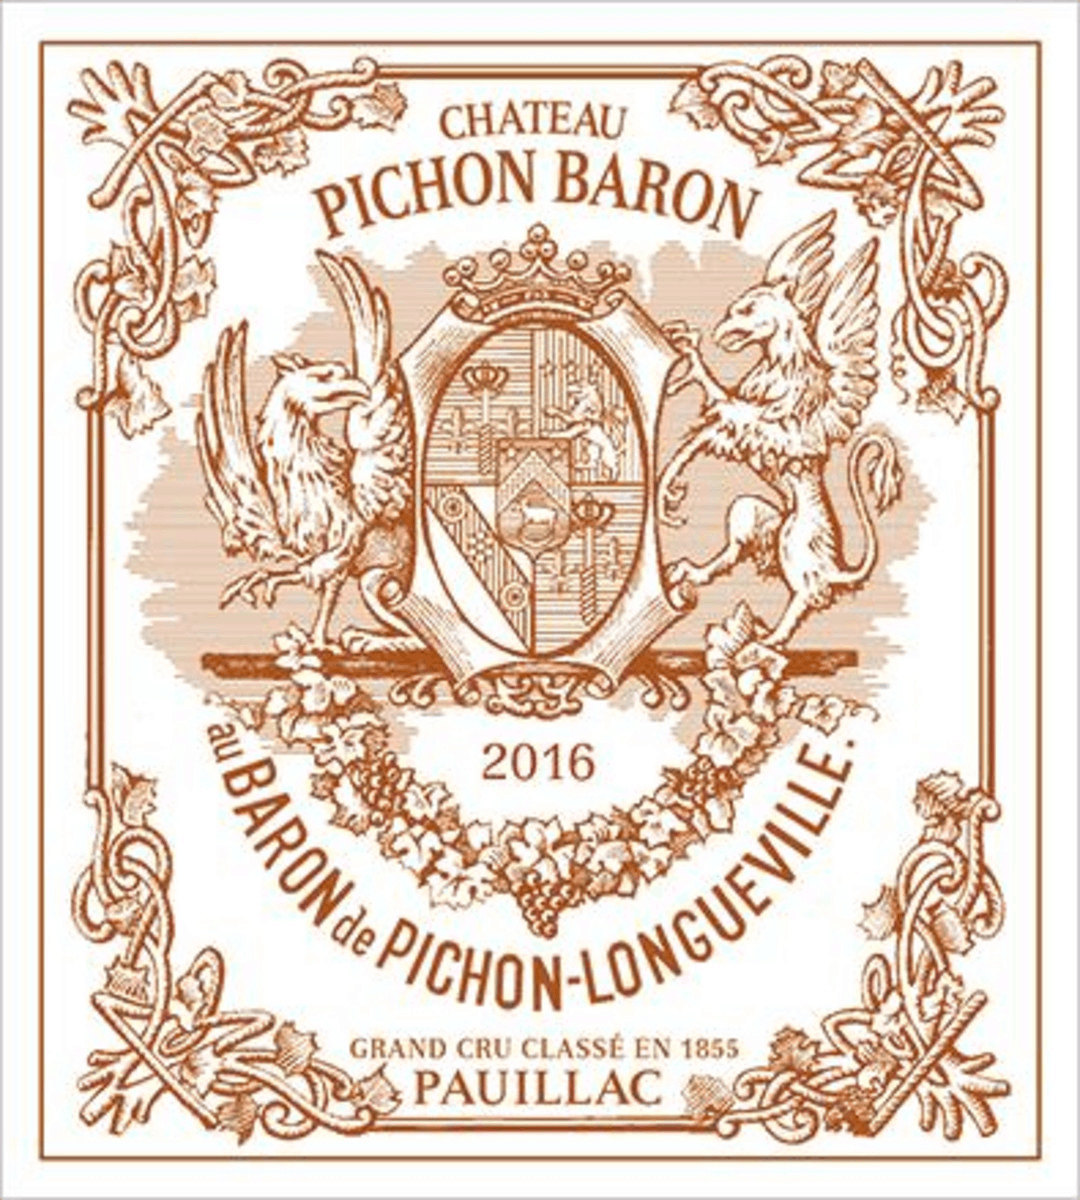 2016 Pichon Baron is one of the best Bordeaux under $200.